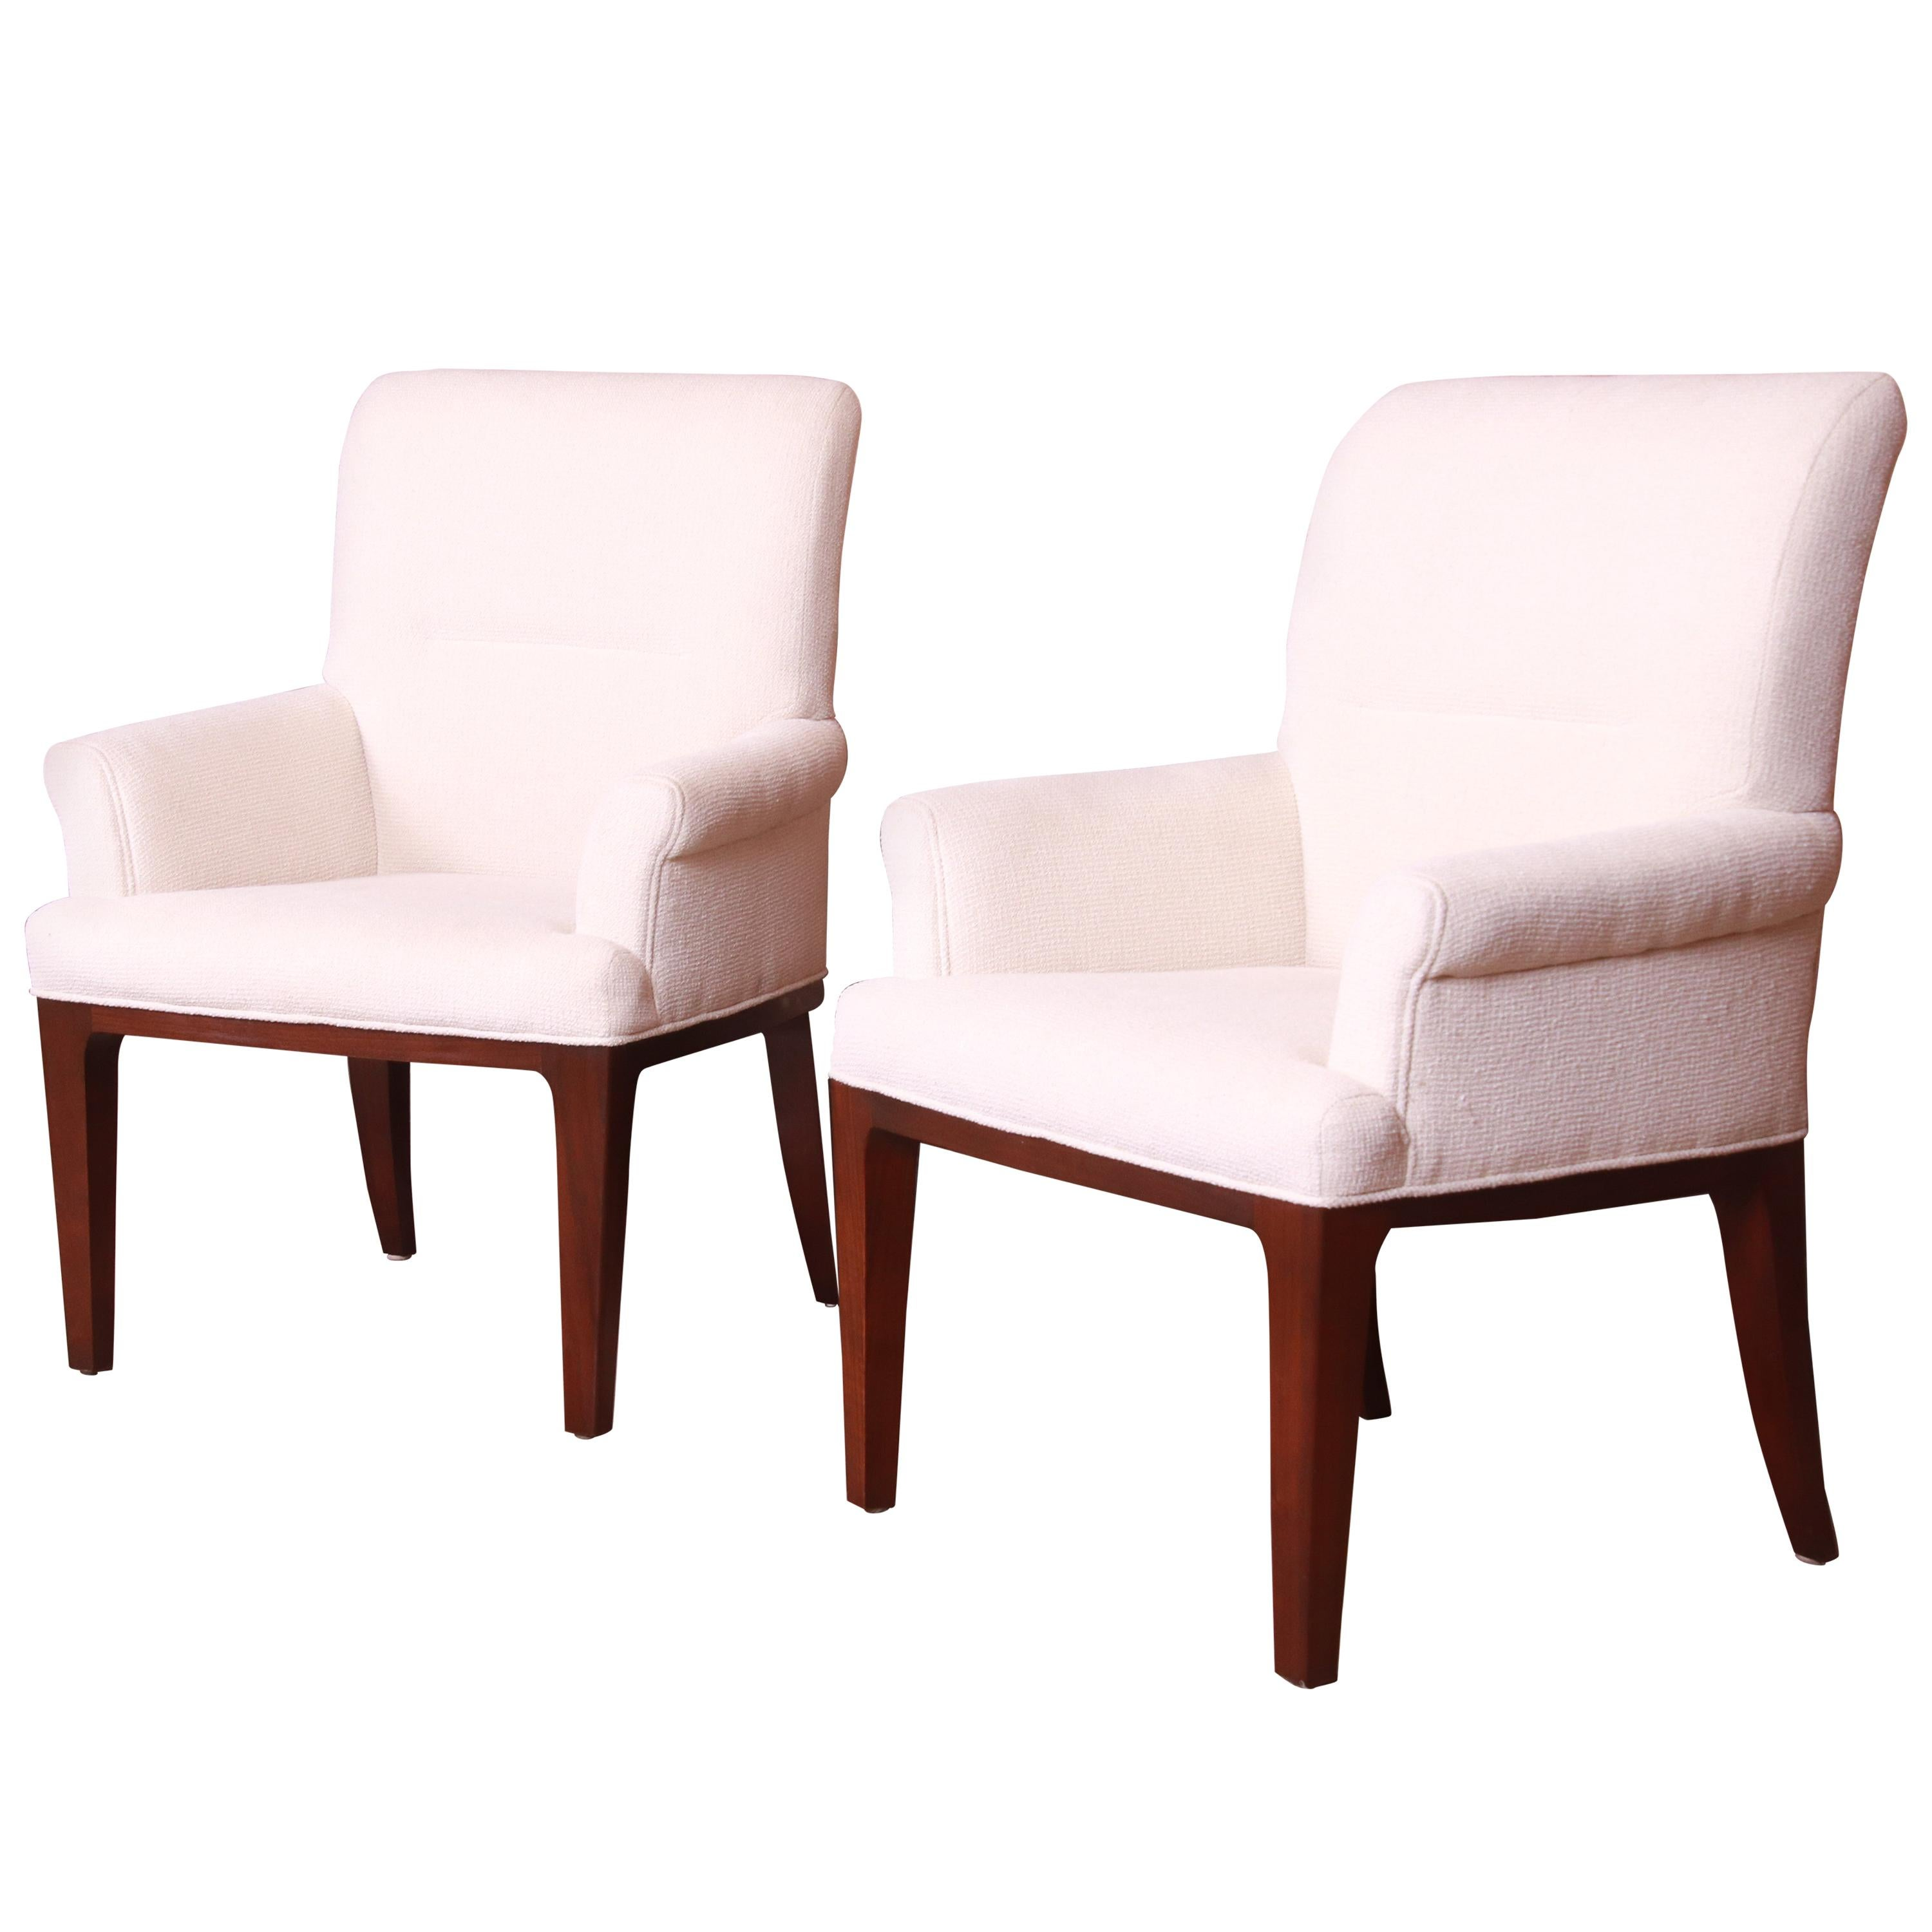 Bill Sofield for Baker Furniture Modern Upholstered Lounge Chairs, Pair